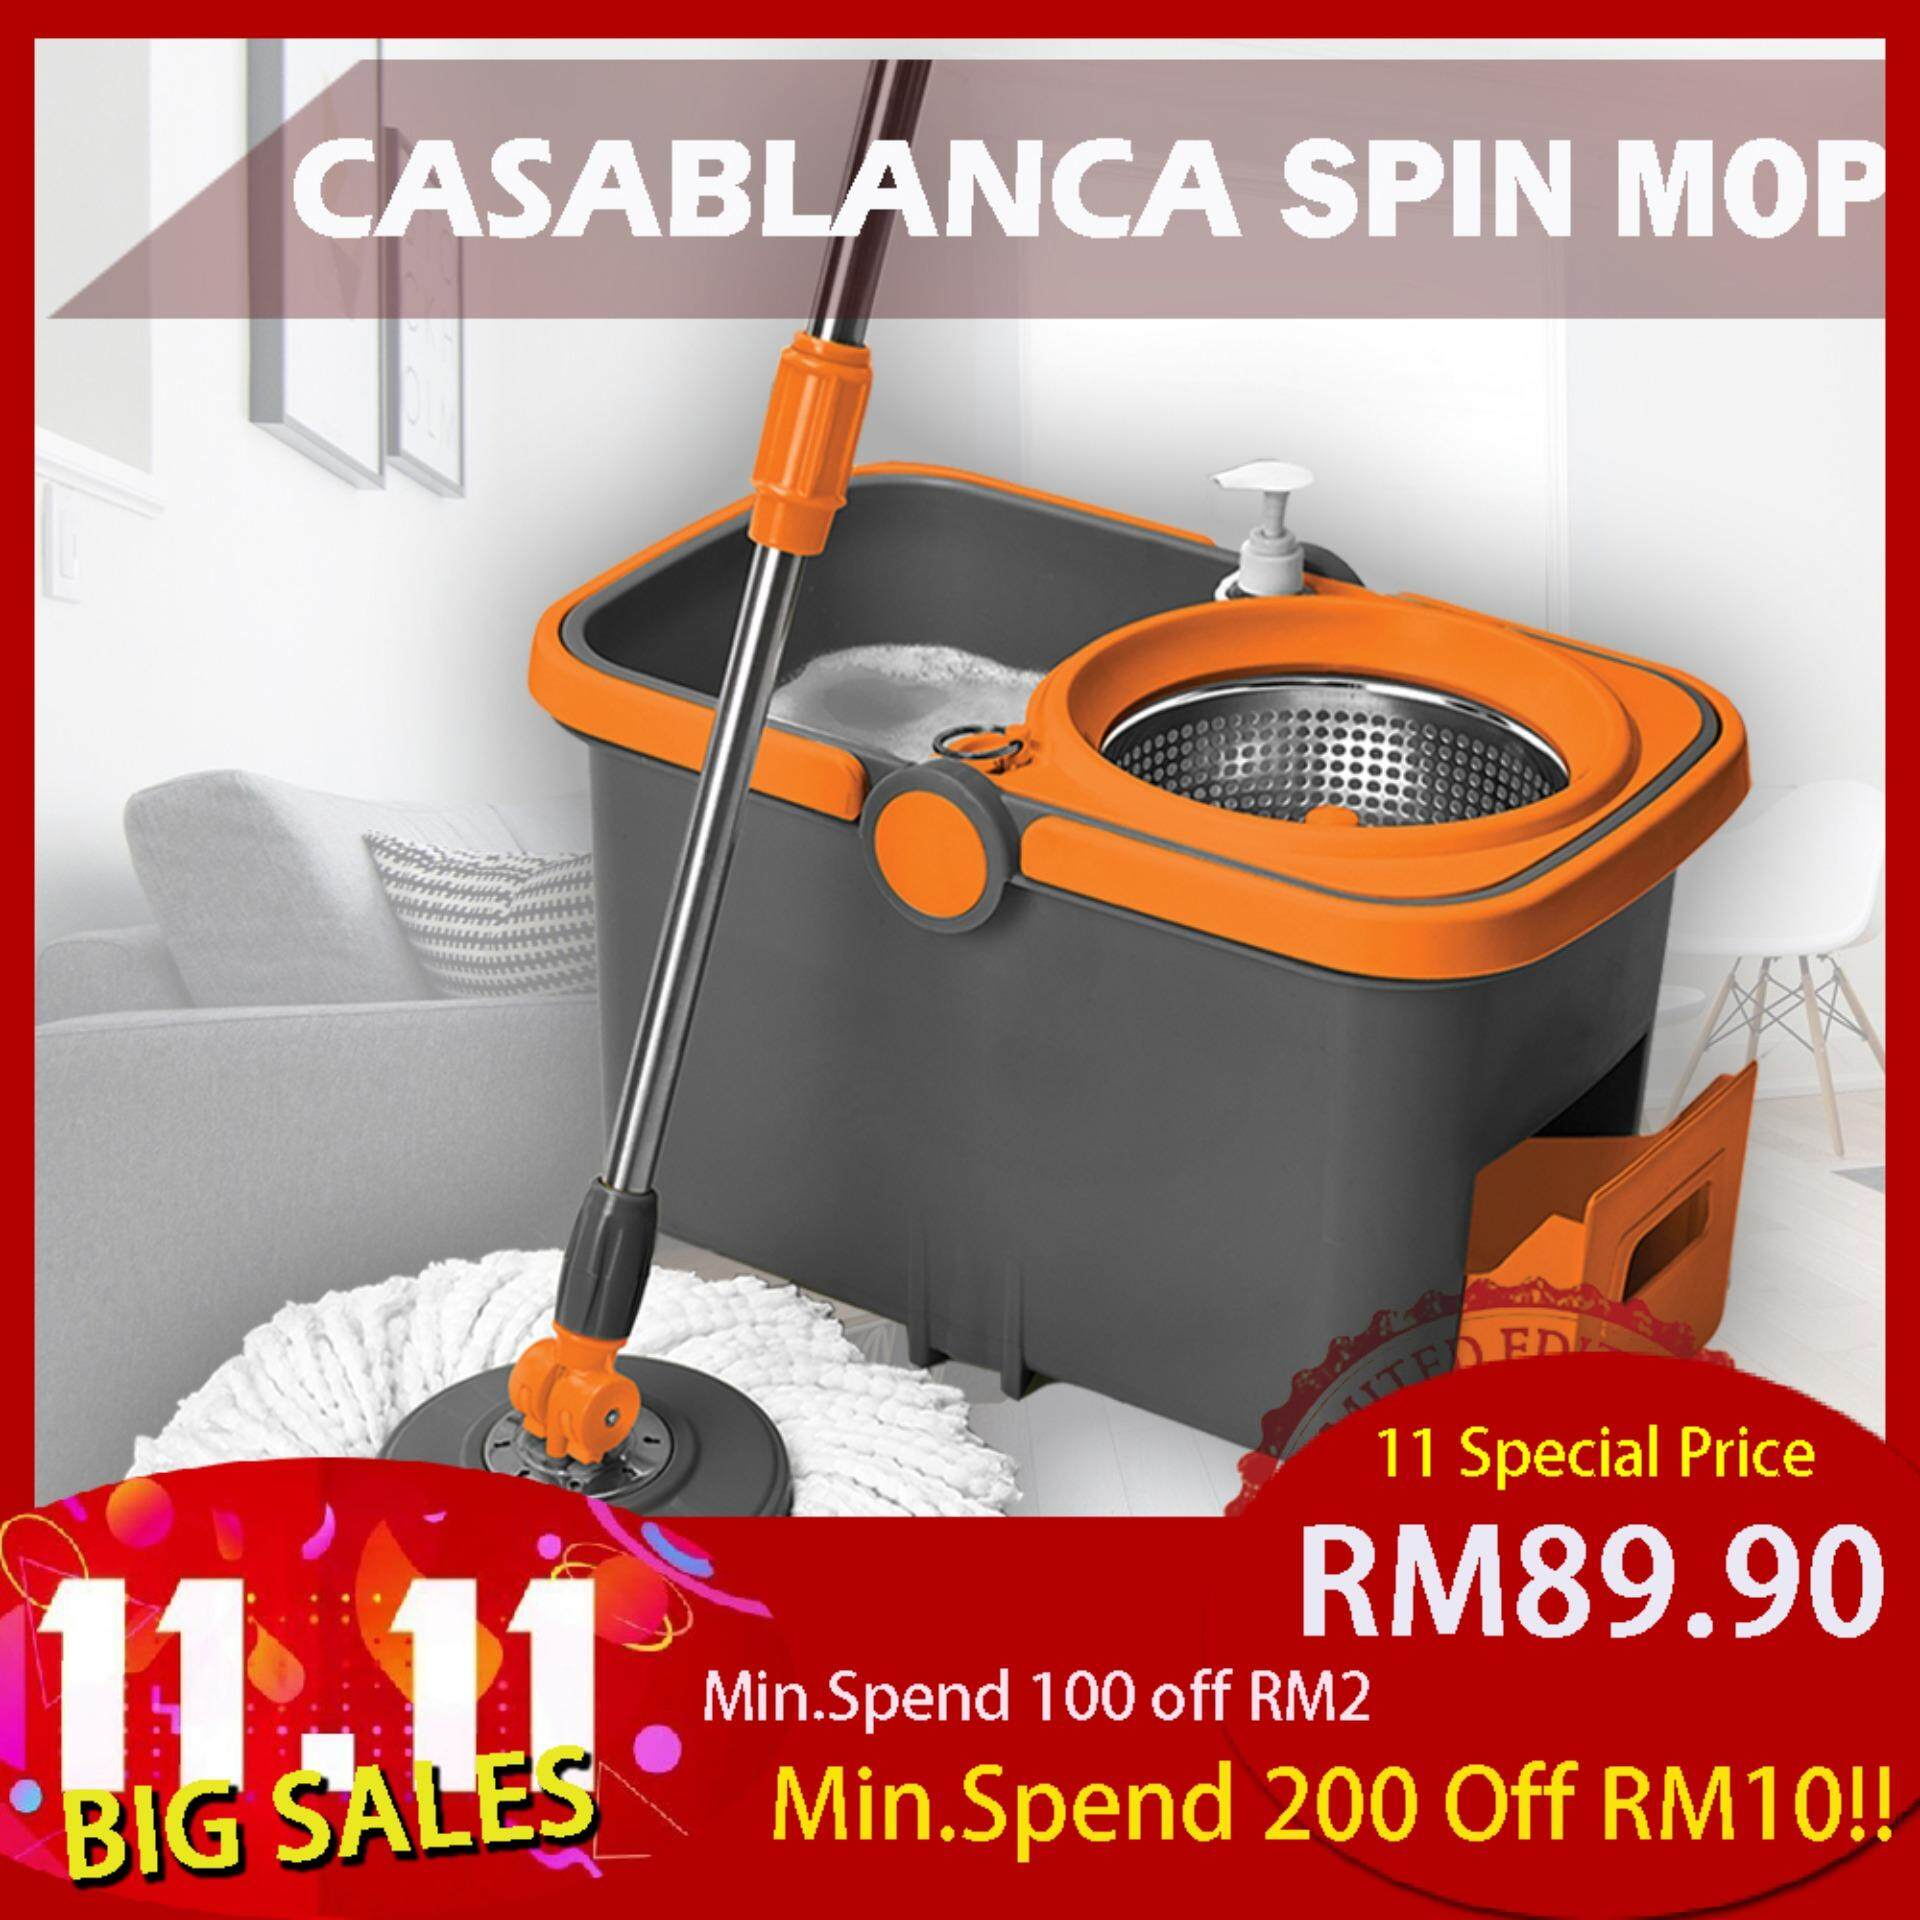 Casablanca Super Spin Mop Ultra Thicken ABS Bucket + Stainless Steel Pole(Granite Colour)